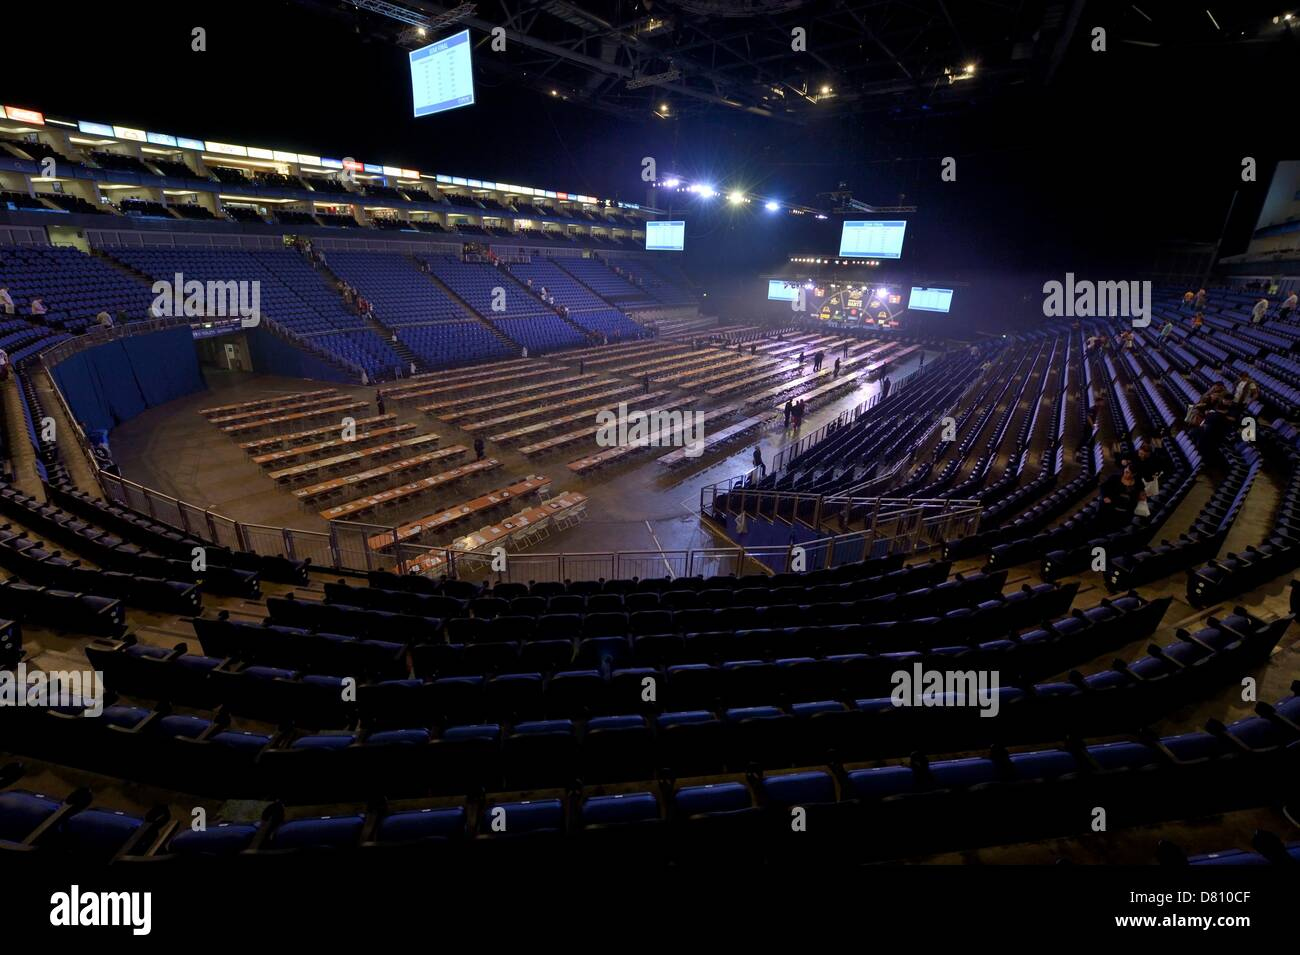 General view of the o2 arena stock photos general view of the o2 general view of the o2 arena the publicscrutiny Choice Image